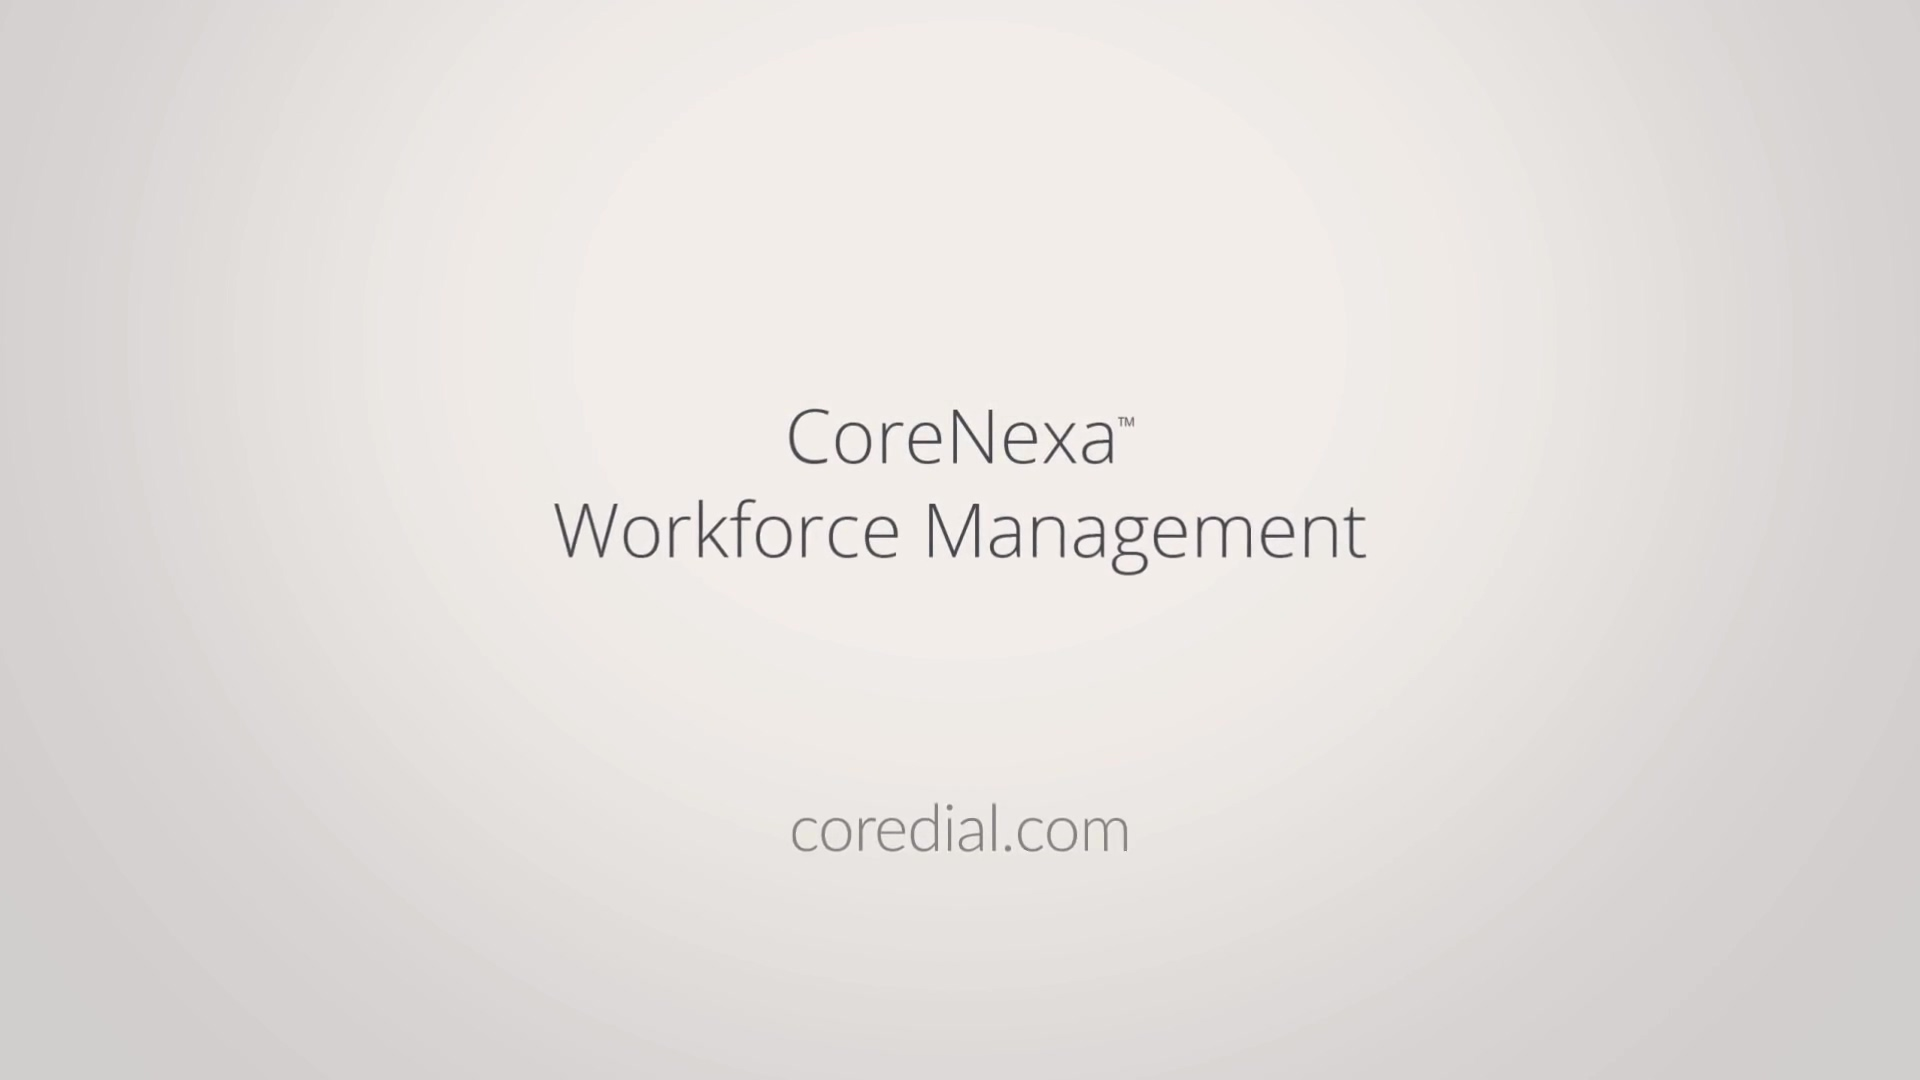 CoreDial: CoreNexa workforce management